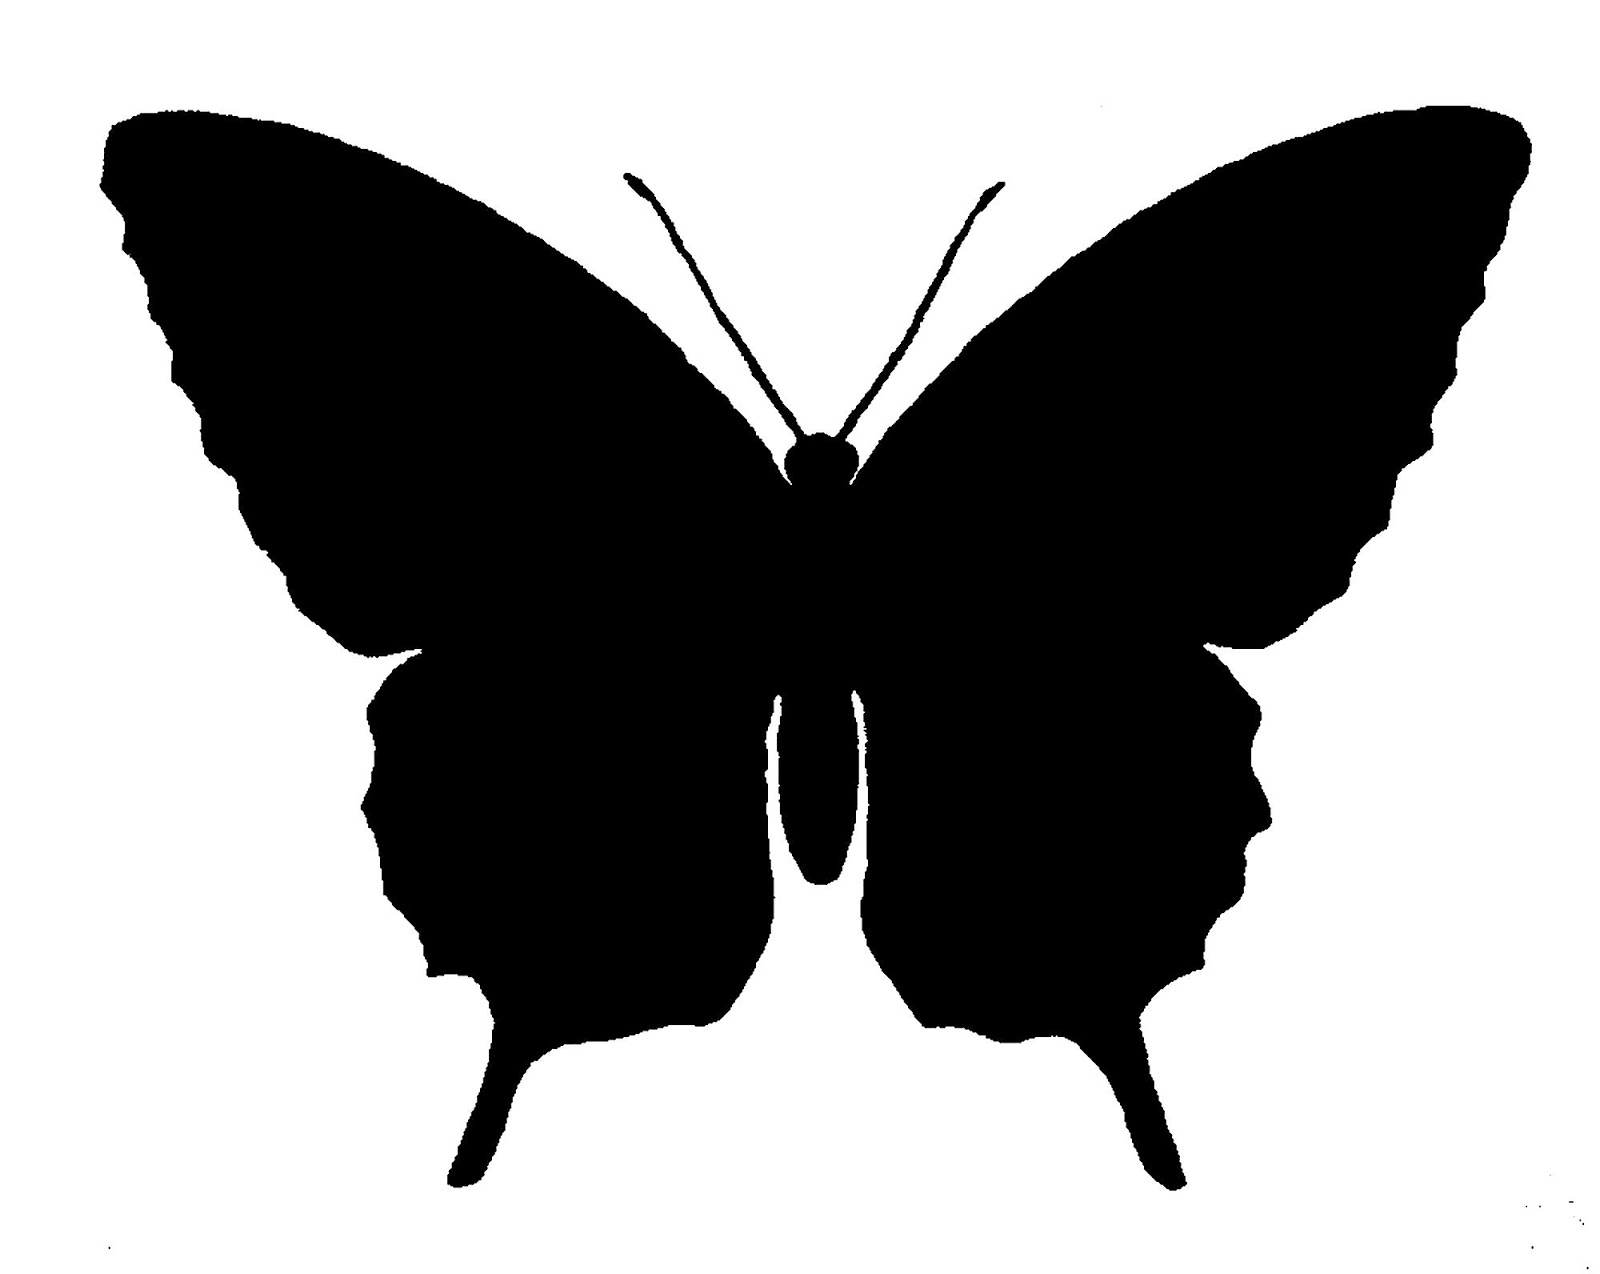 1600x1274 The Graphics Monarch Free Butterfly Silhouette Image Grayscale